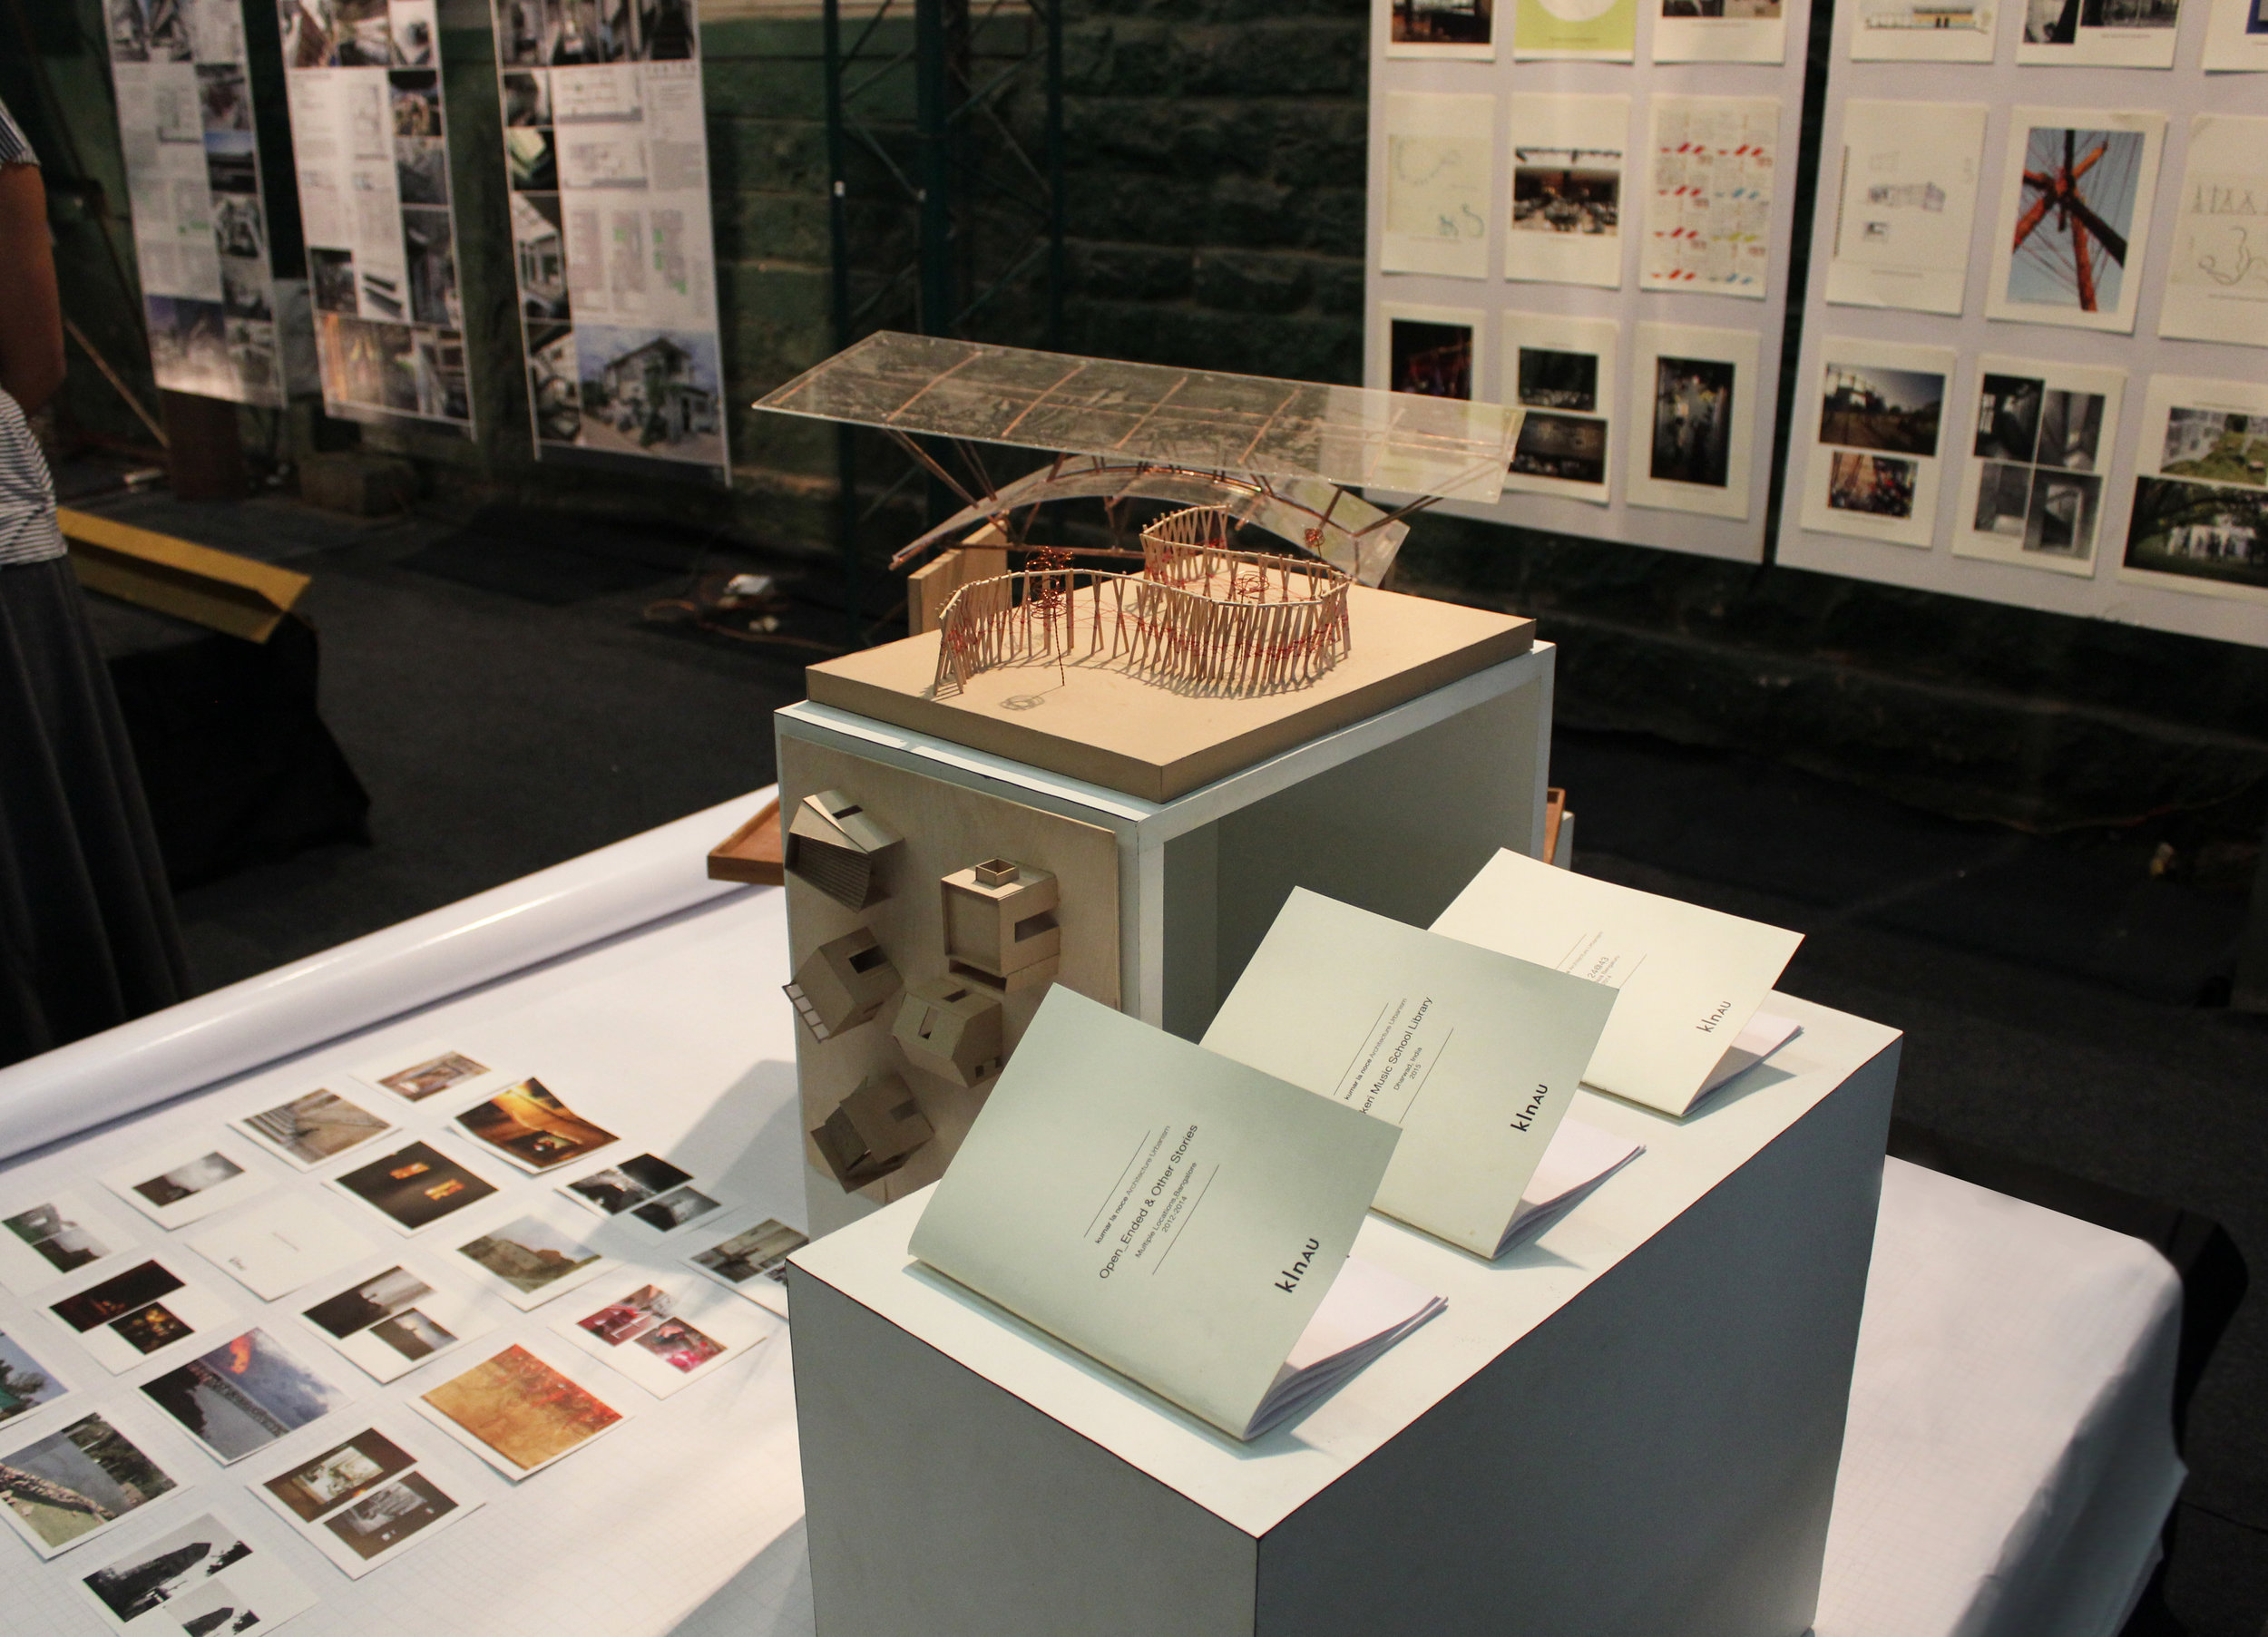 KLN at Praxis Exhibition curated by the Indian Institute of Architects, Bengaluru, Feb 2016